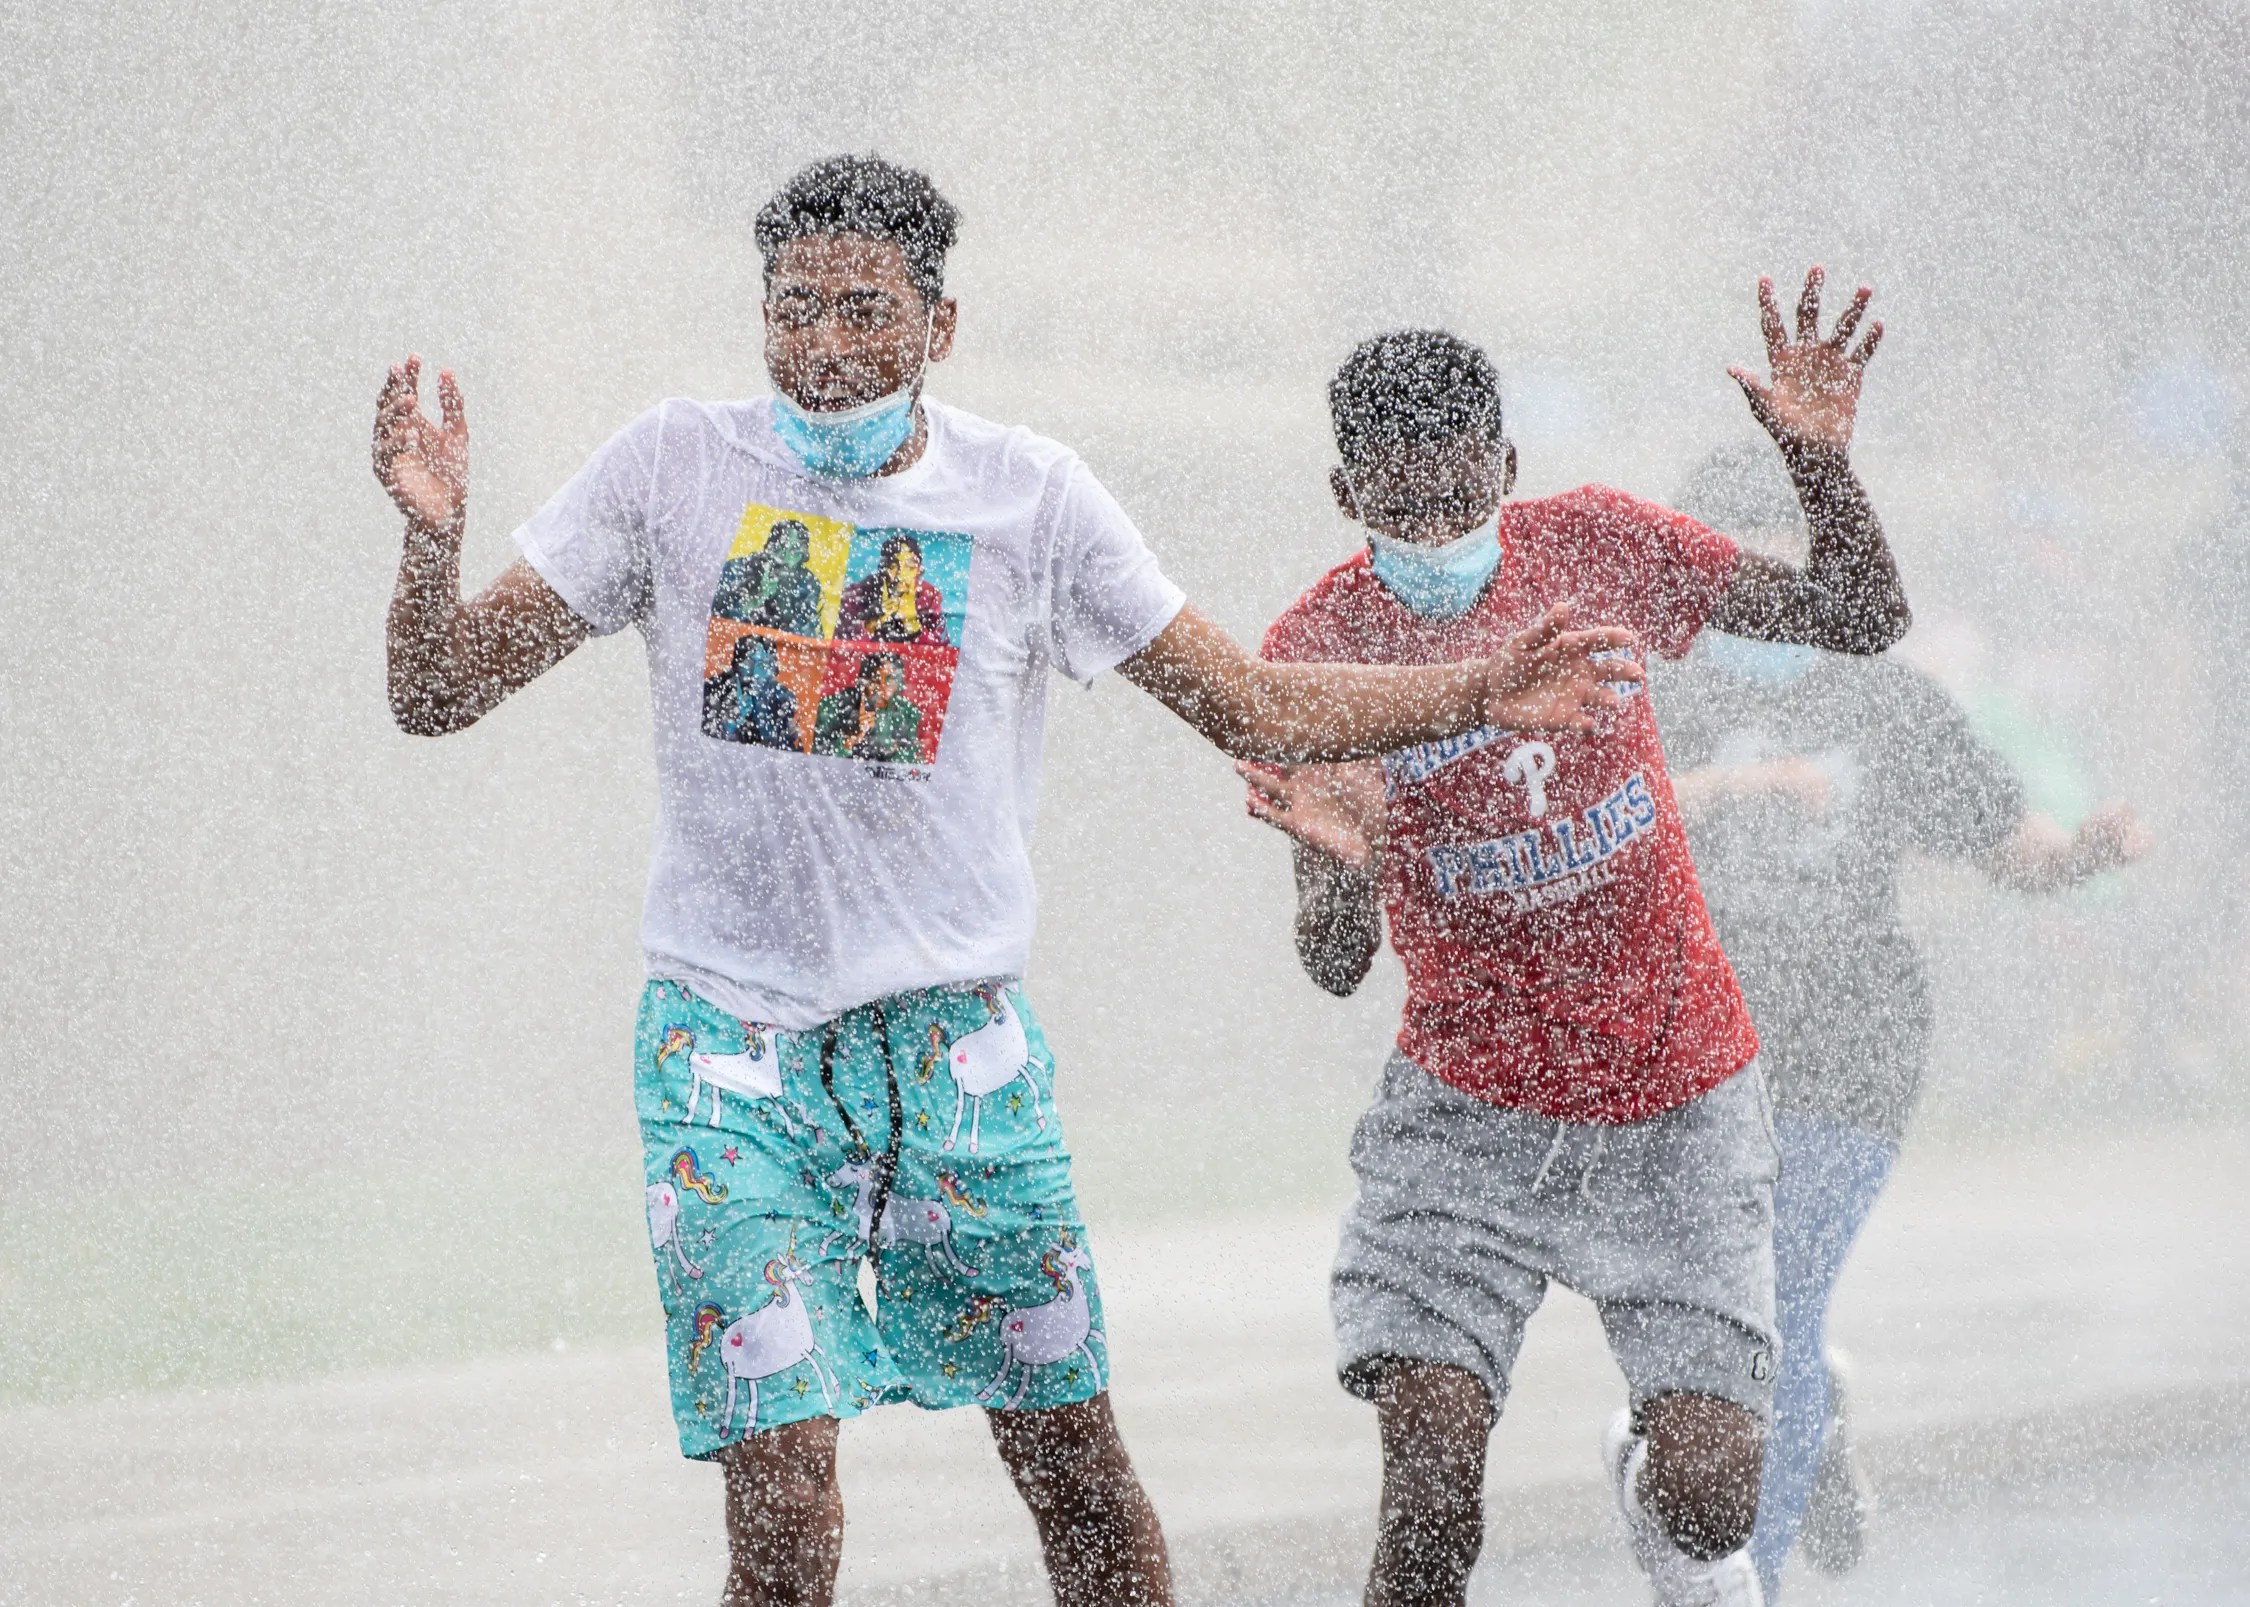 Students, teachers and staff, splash their way through a spray of water during Pennridge High School's April Showers event, a fundraiser supporting Special Olympics athletes and the school's unified sports teams, at Pennridge High School on Thursday, April 29, 2021.